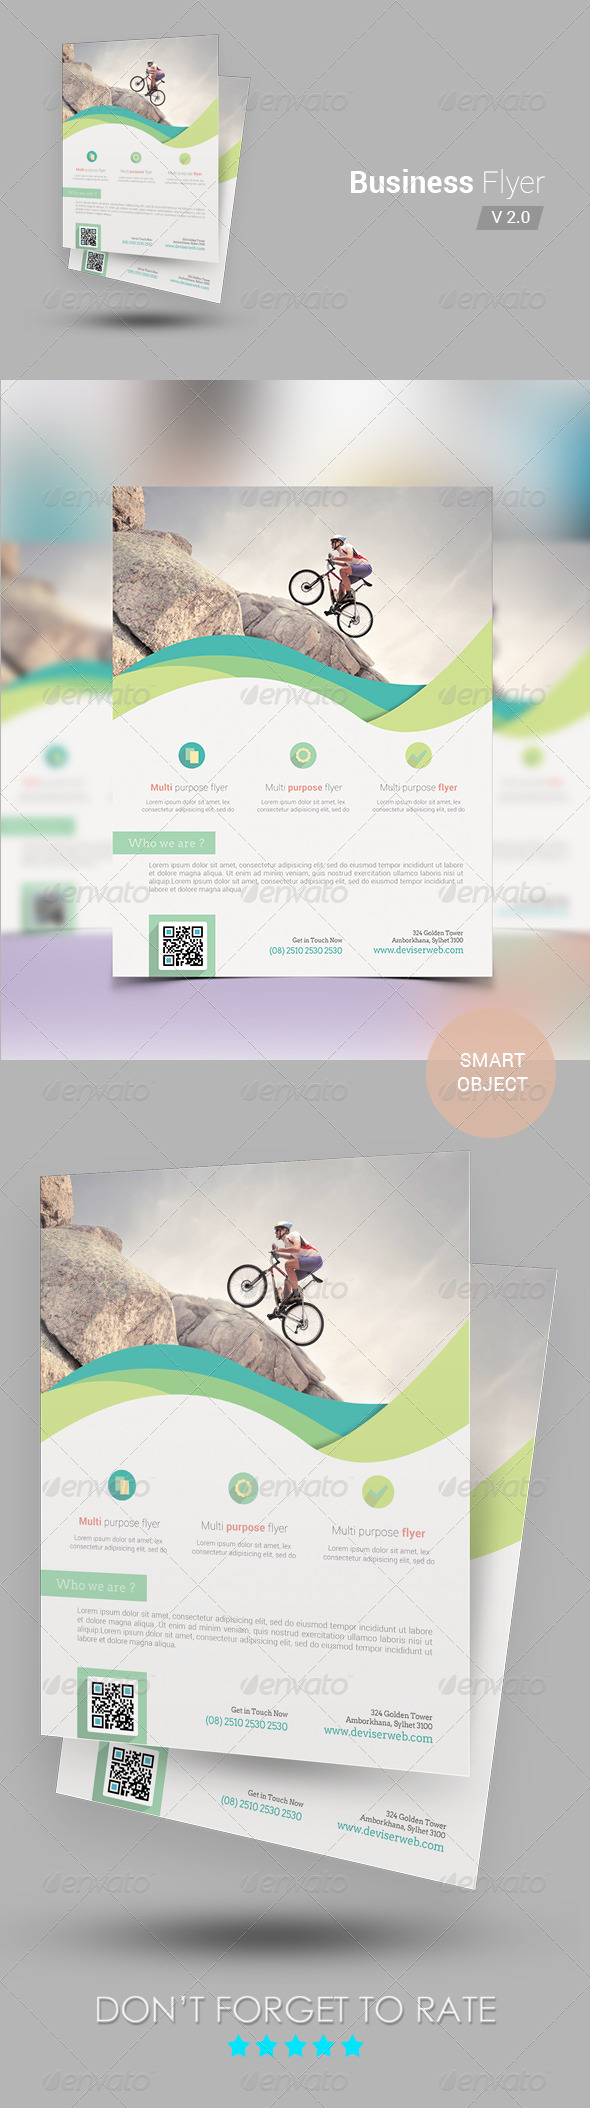 GraphicRiver Corporate Business Flyer Template v2 7065811